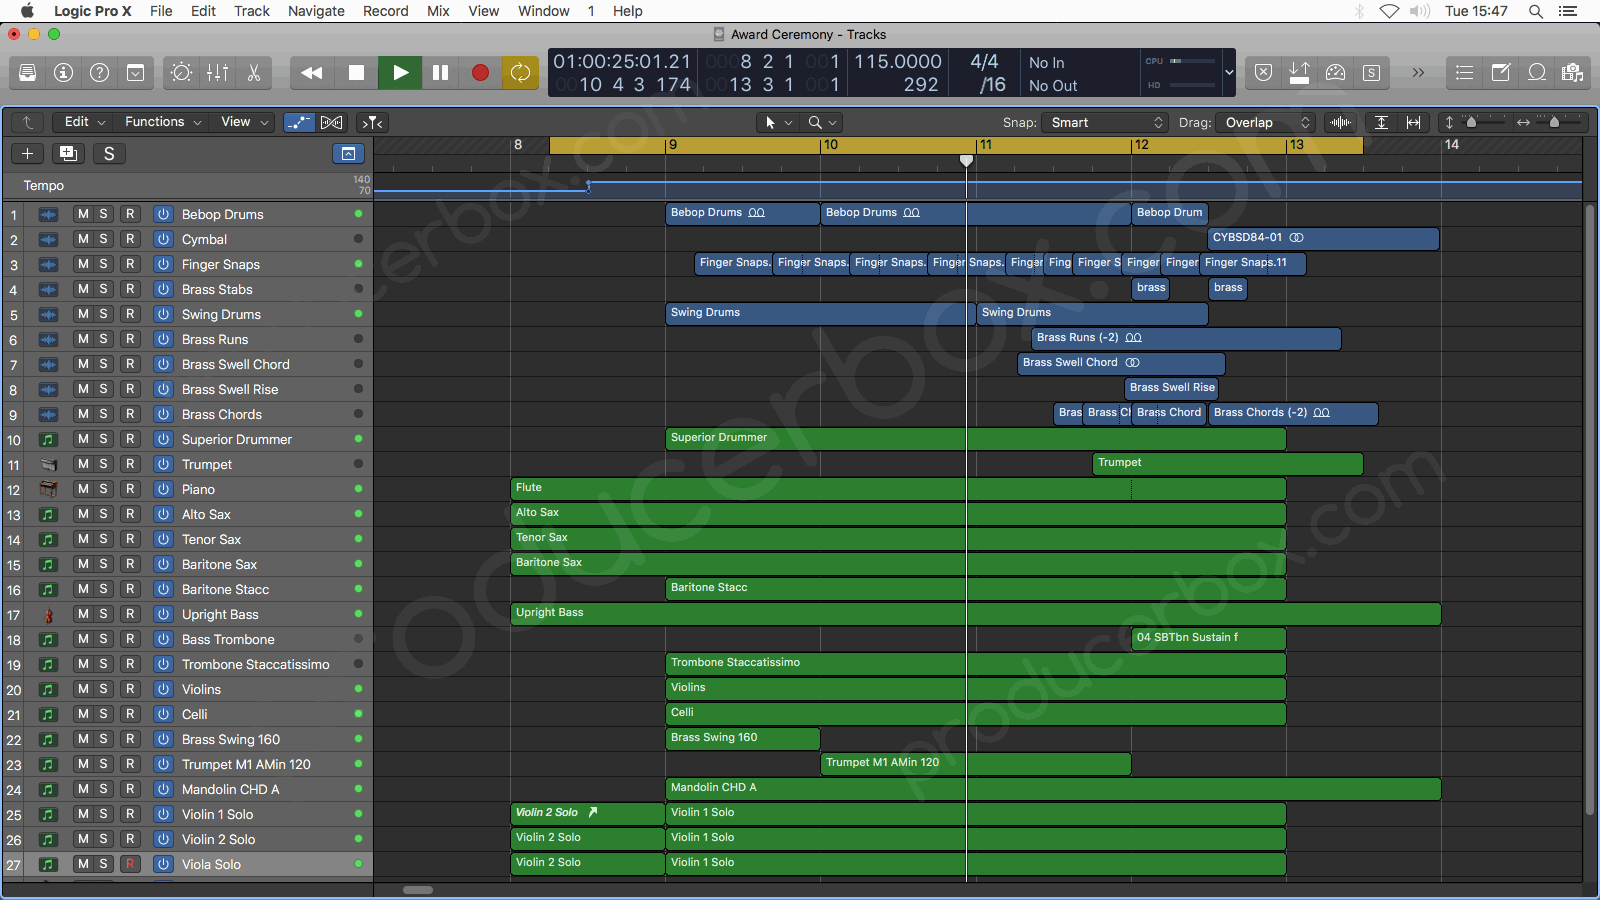 Logic Pro X Arrangement Screenshot